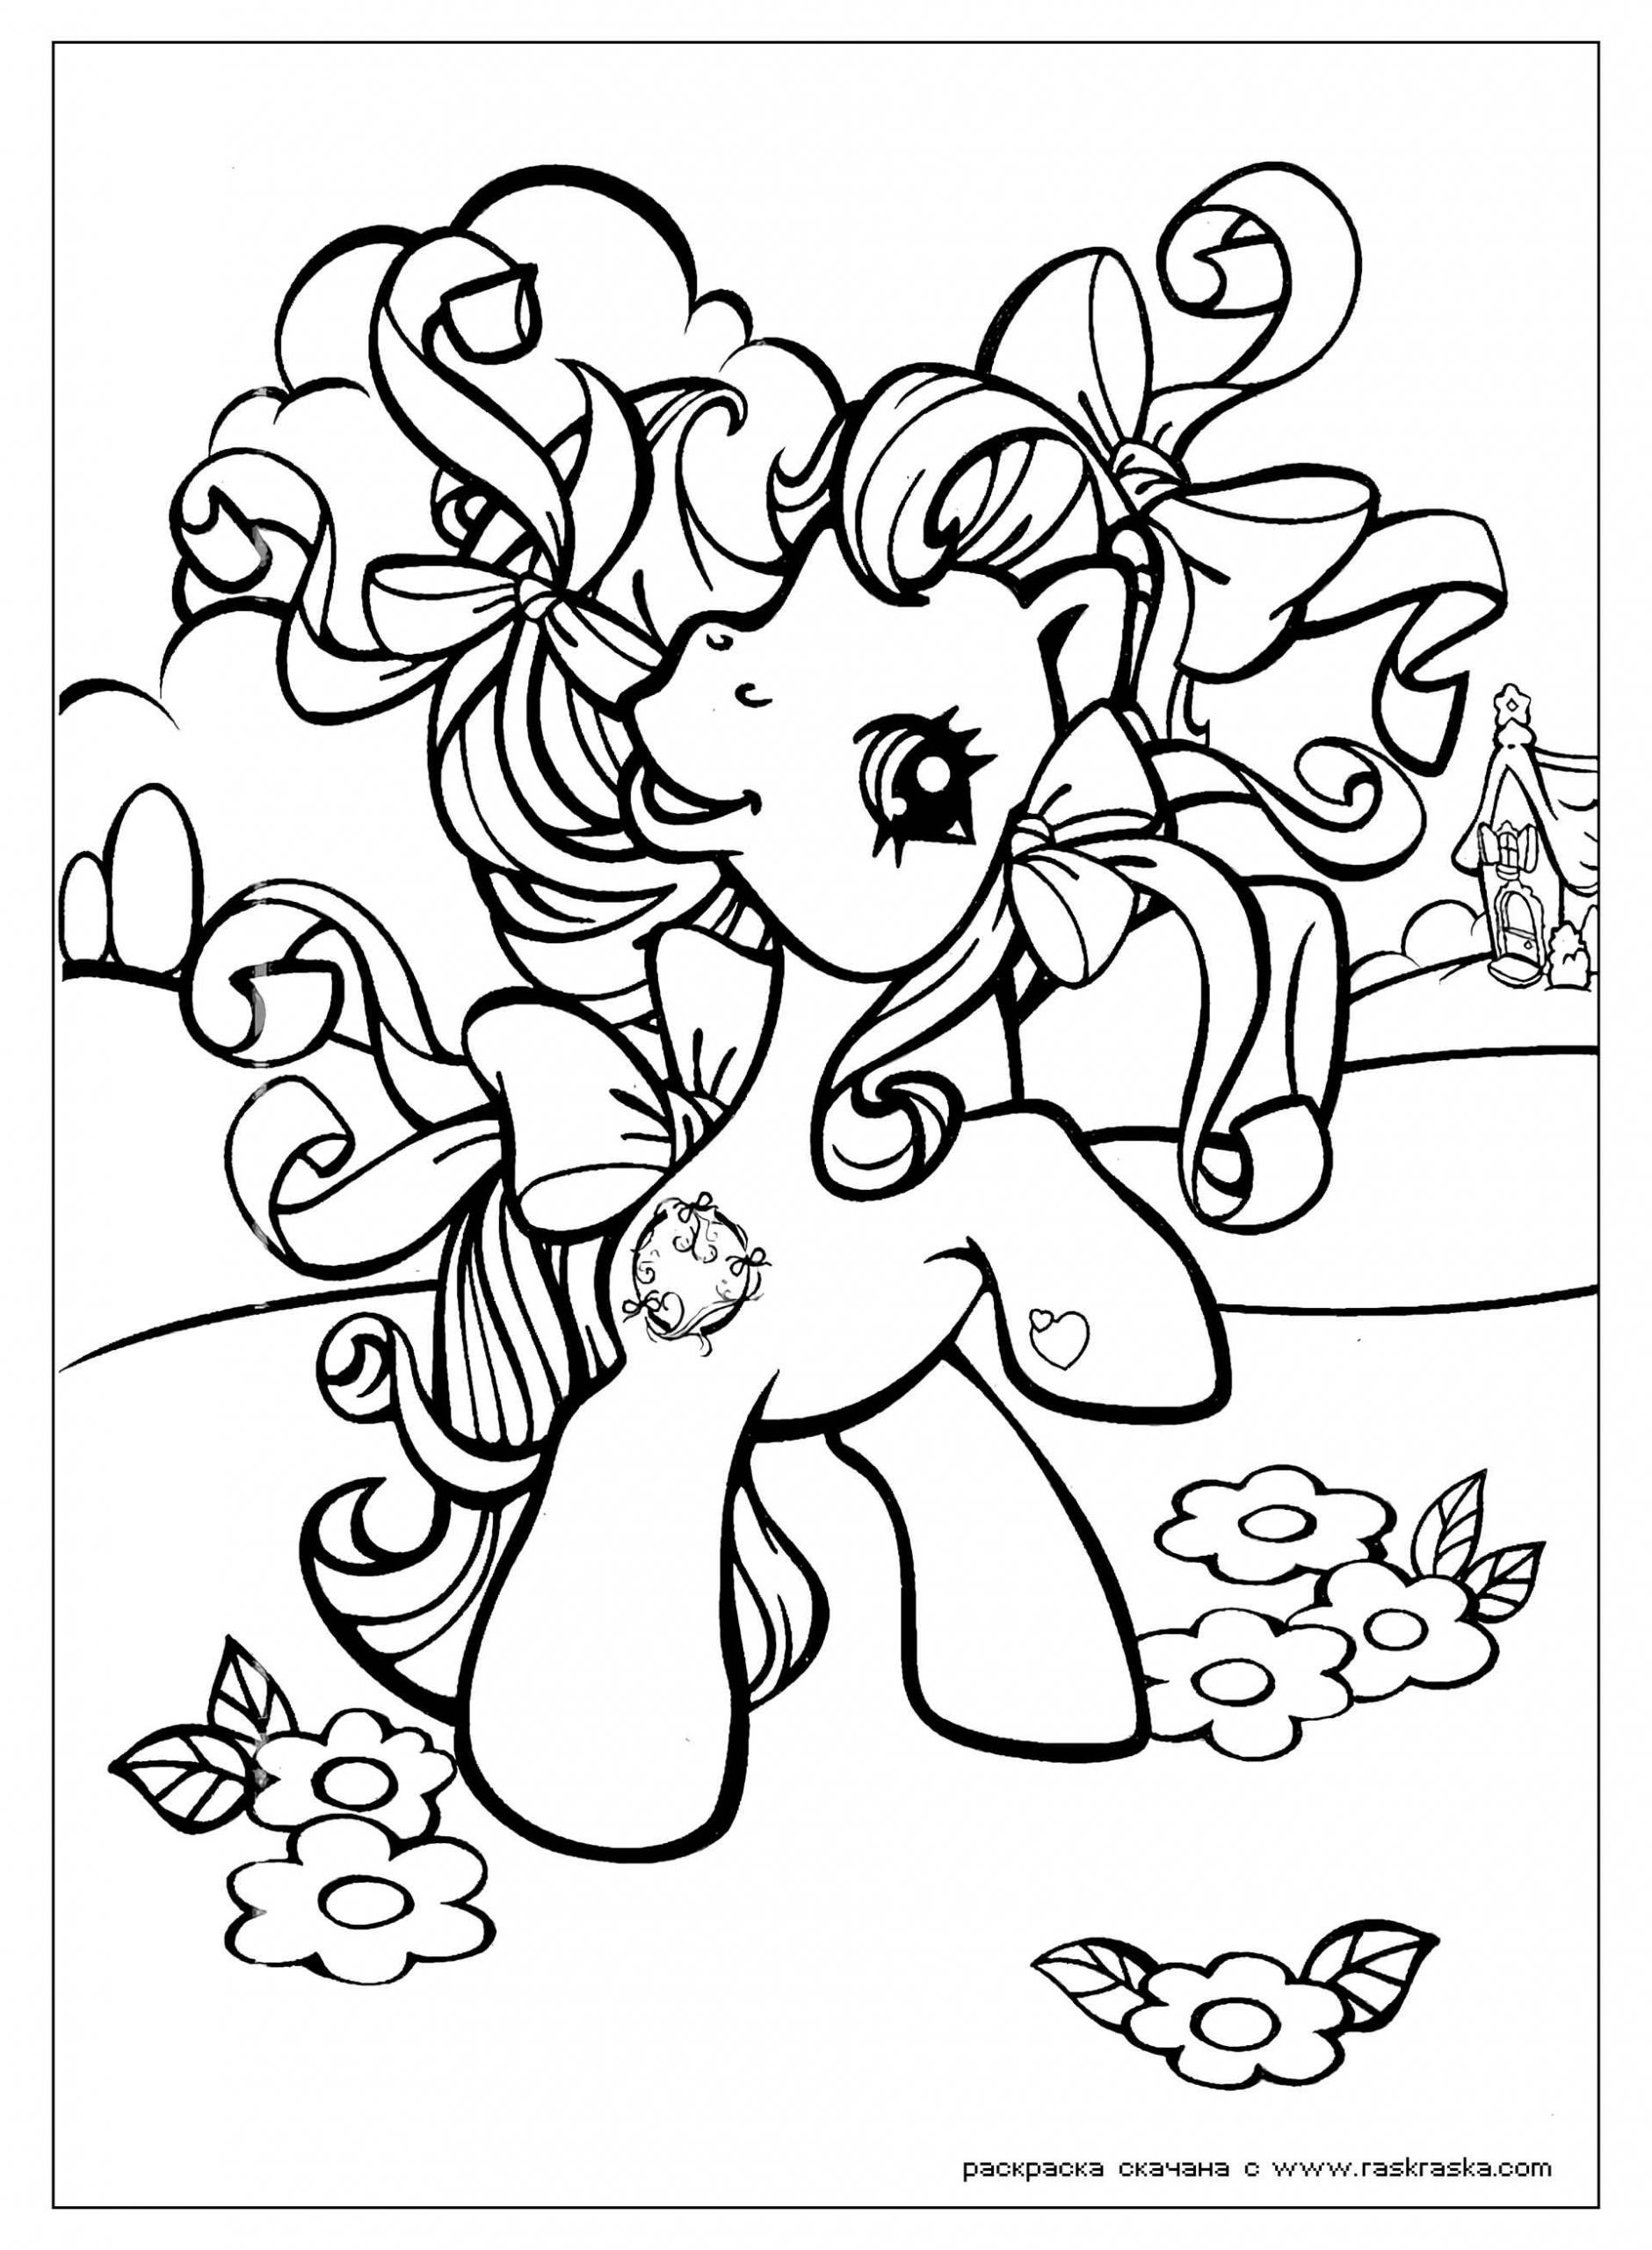 Image Of Playing Fluttershy With Ribbons In Her Mane